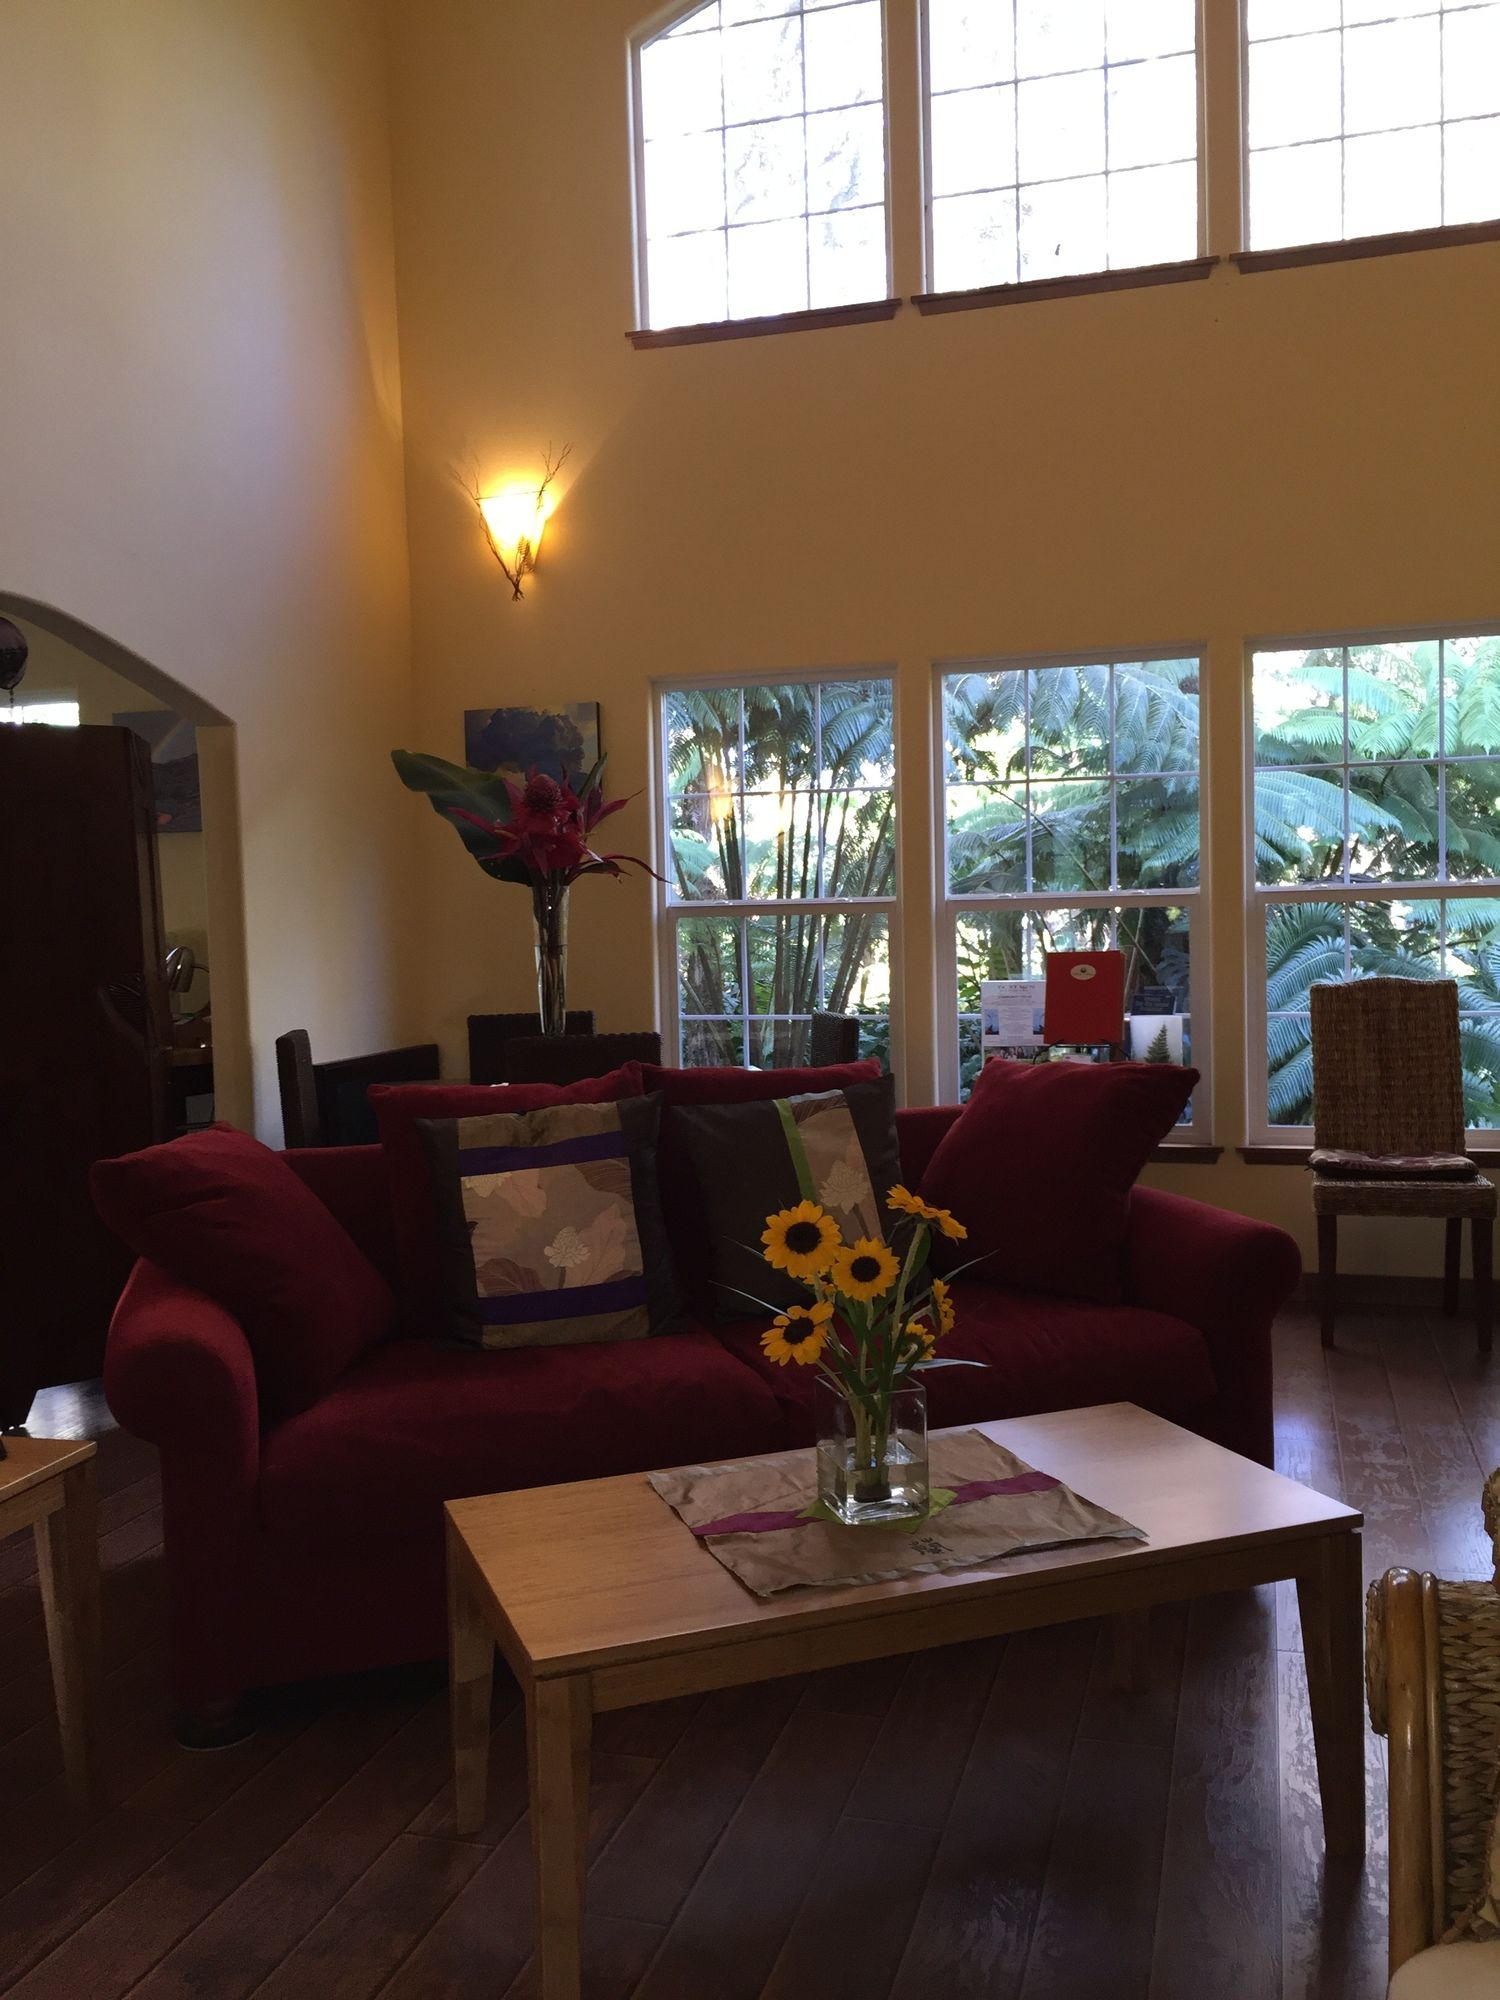 discount coupon for bamboo orchid cottage in volcano hawaii save rh freehotelcoupons com Orchid Design bamboo orchid cottage volcano